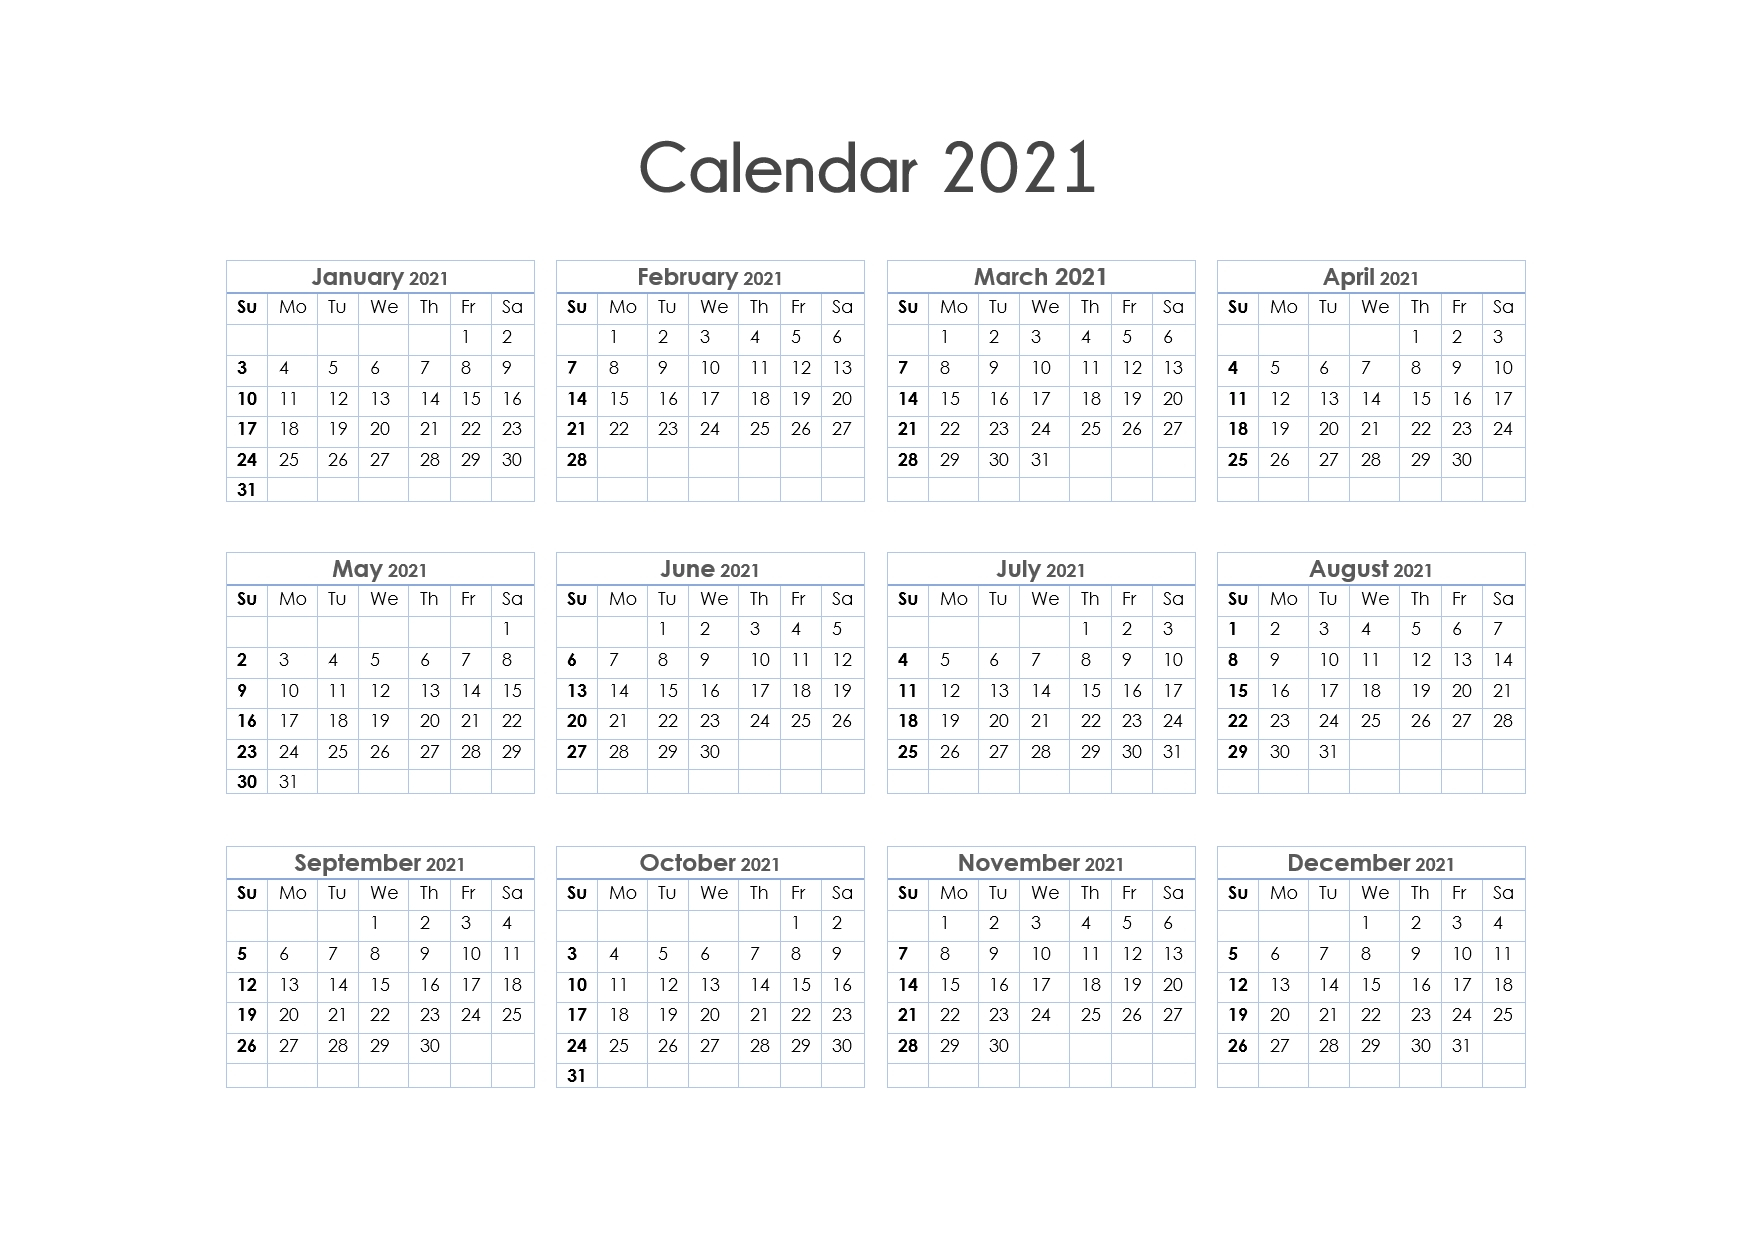 2021 Free Printable Calendars Without Downloading  Free Printable Calendar 2021 Without Download